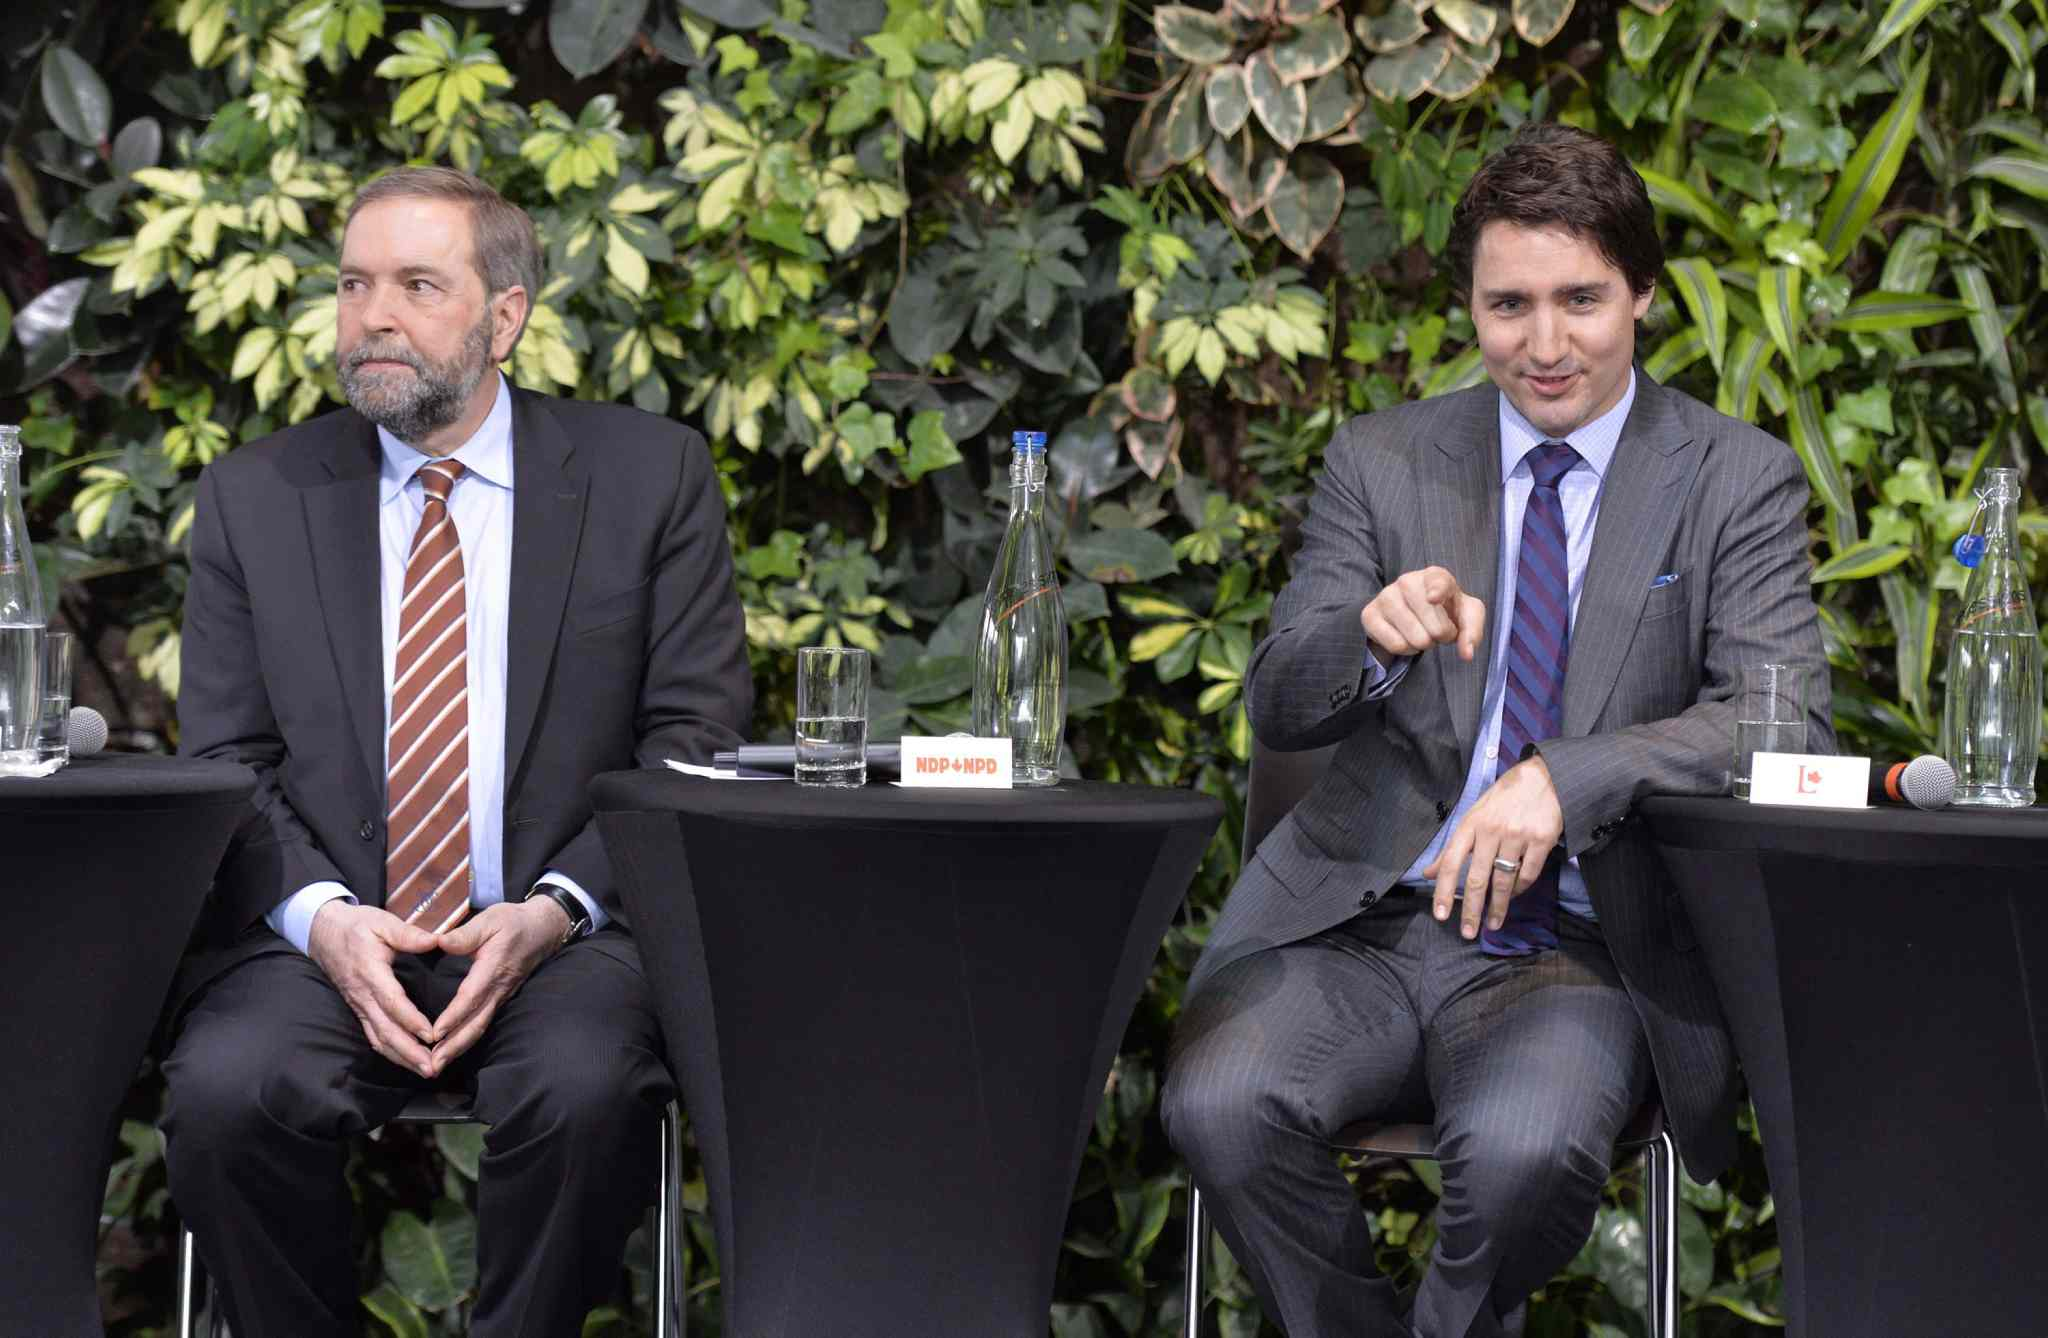 NDP Leader Tom Mulcair (left) and Liberal Leader Justin Trudeau.